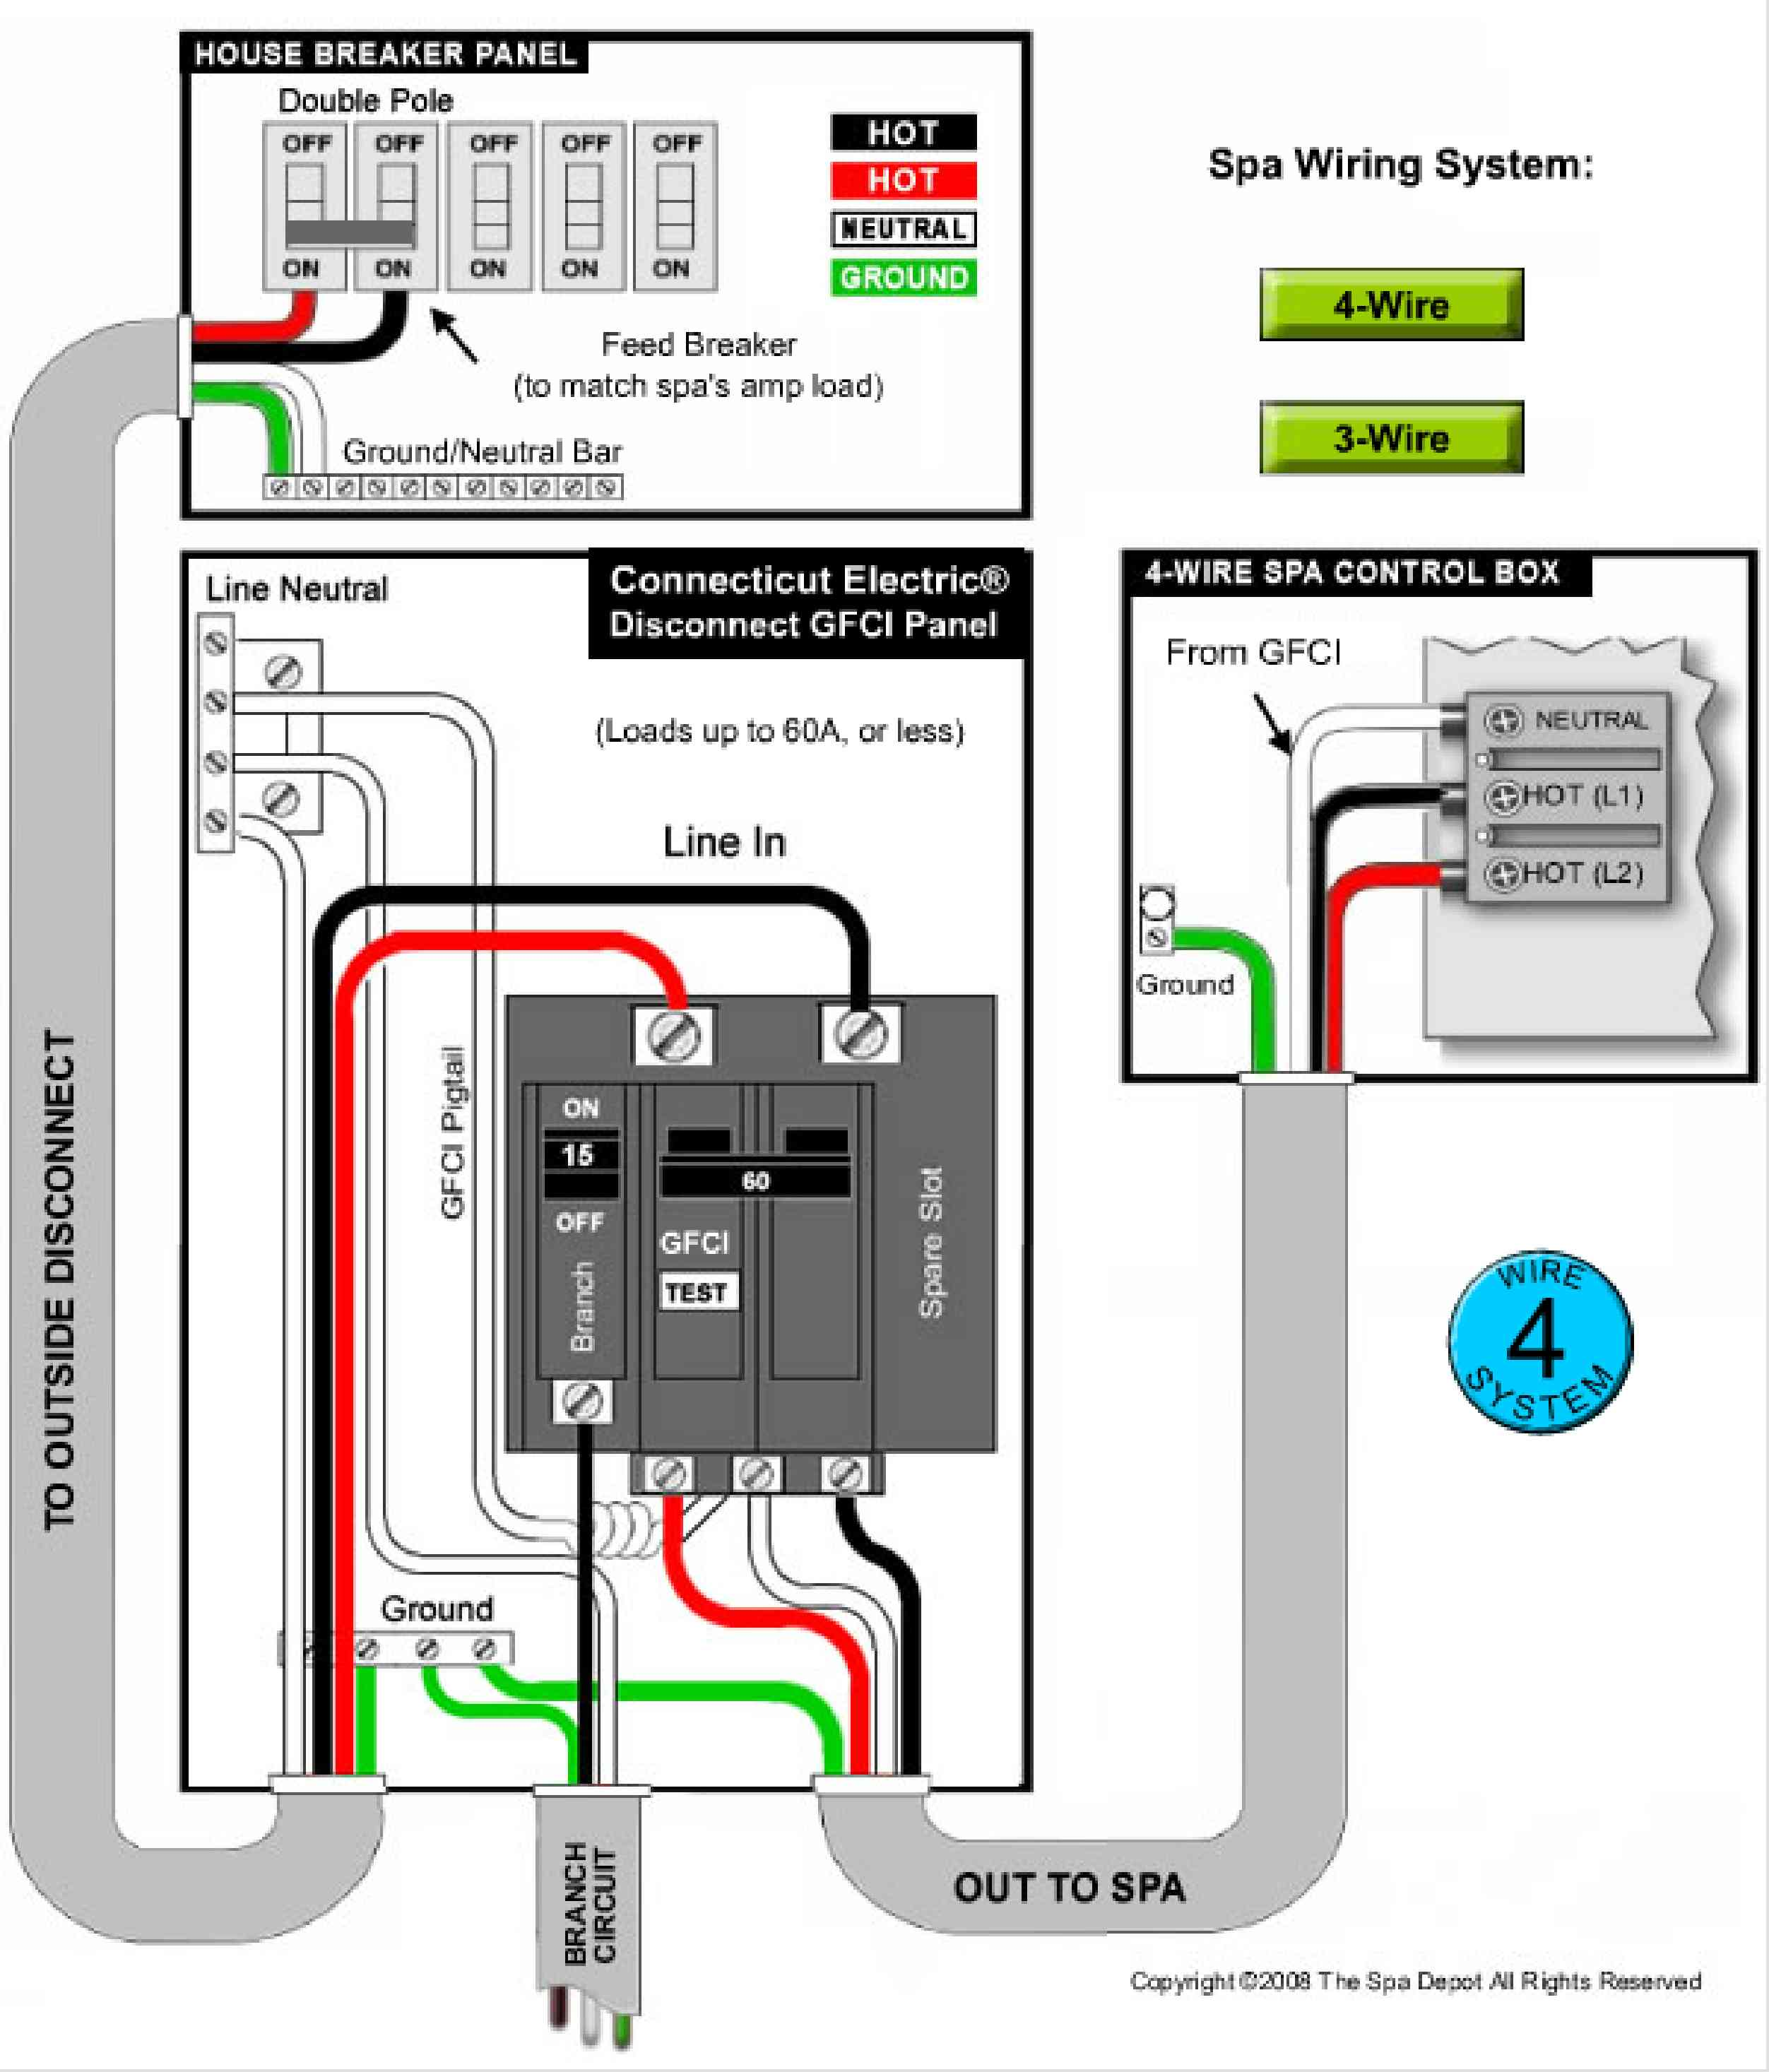 hot tub gfci wiring diagram just moved an image spa 631 renew to my home (used). had ... hot tub electrical wiring diagram #1